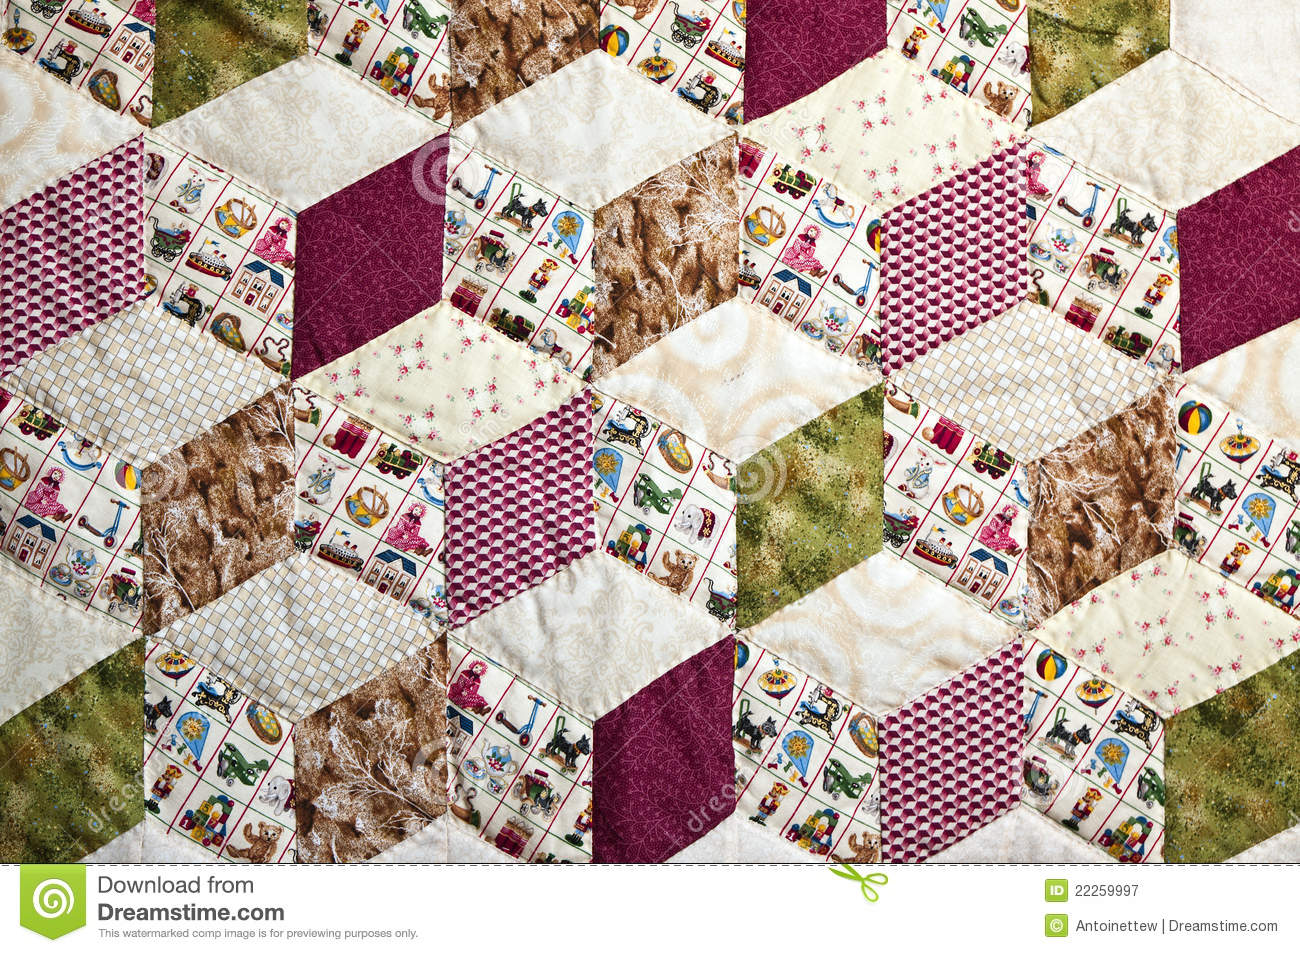 Quilt with pattern of squares